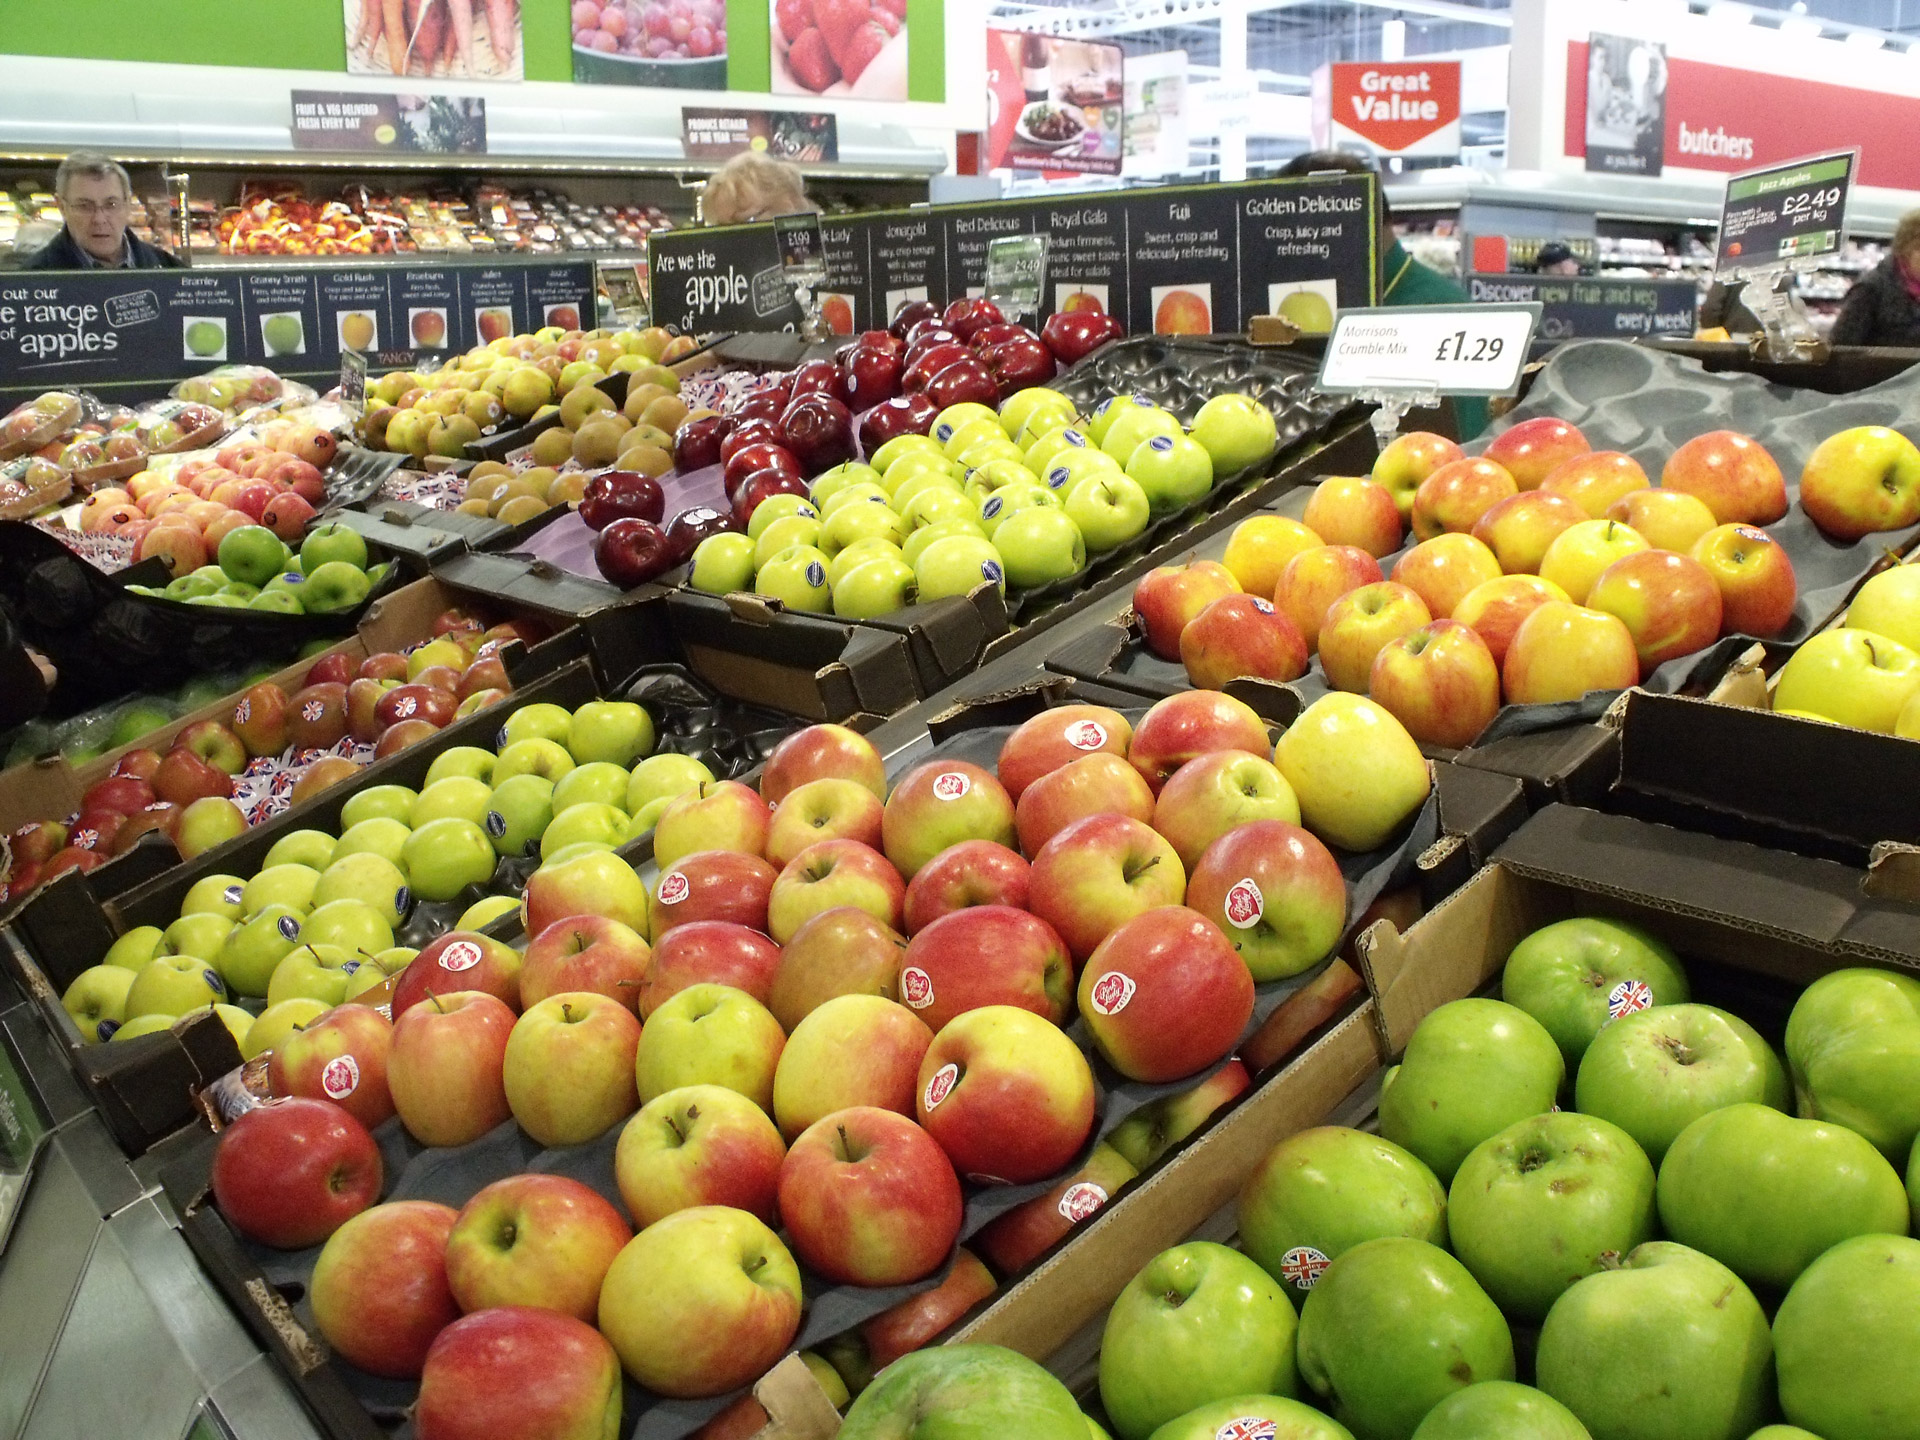 Different apples,apples supermarket,apples in supermarket,free pictures,  free photos - free image from needpix.com